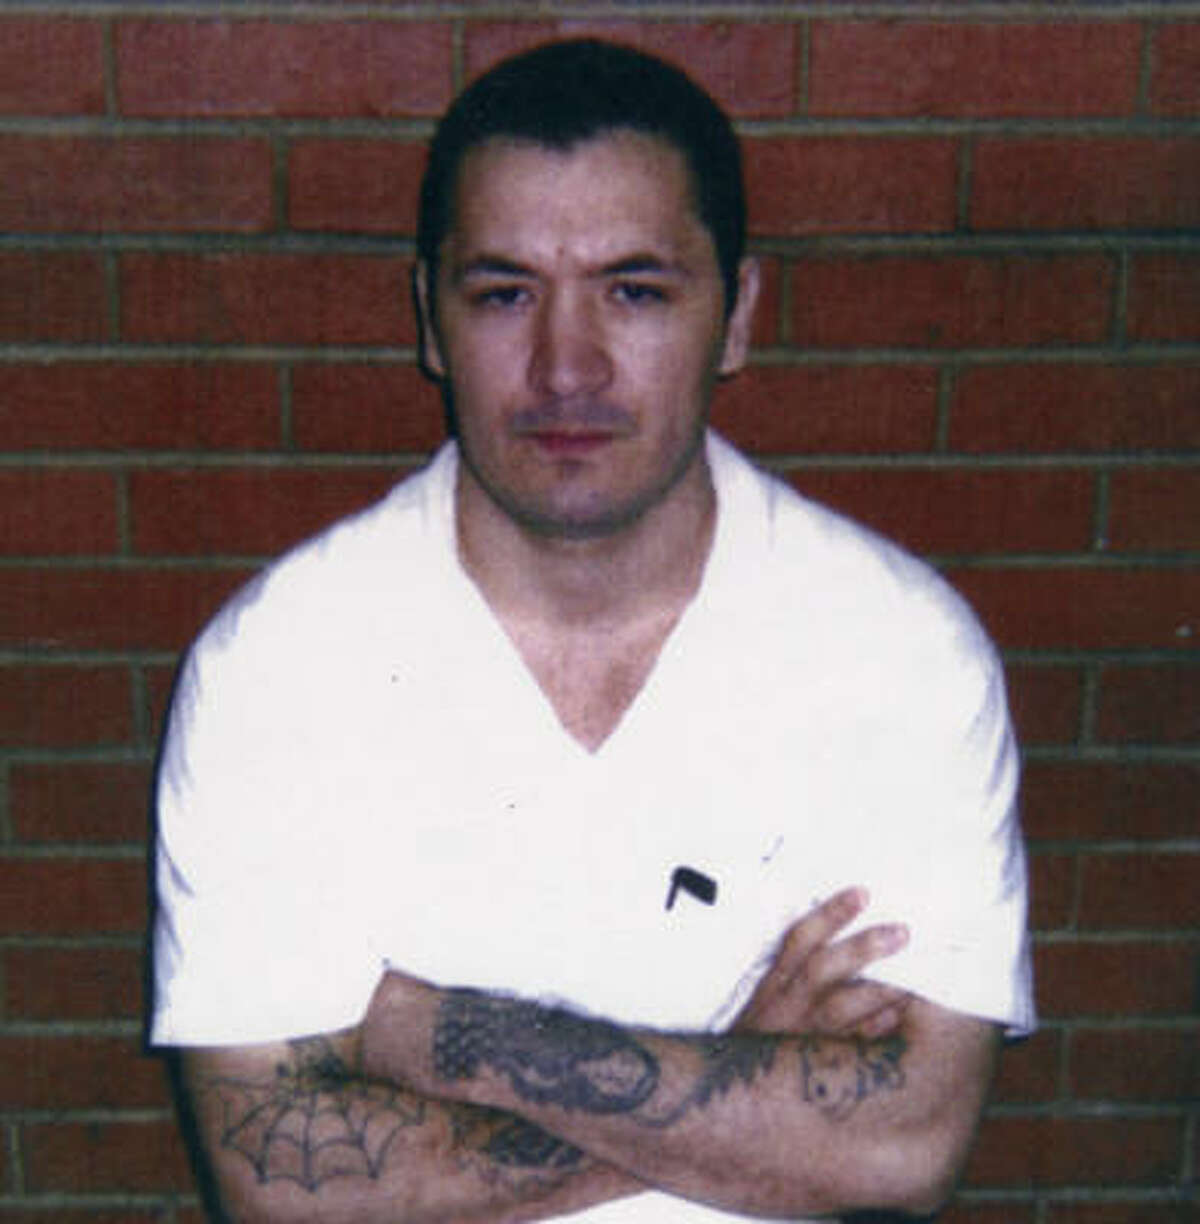 Ruben Cantu is shown the day of his Aug. 24, 1993, execution for a 1984 robbery and murder that three witnesses say he was not involved in.